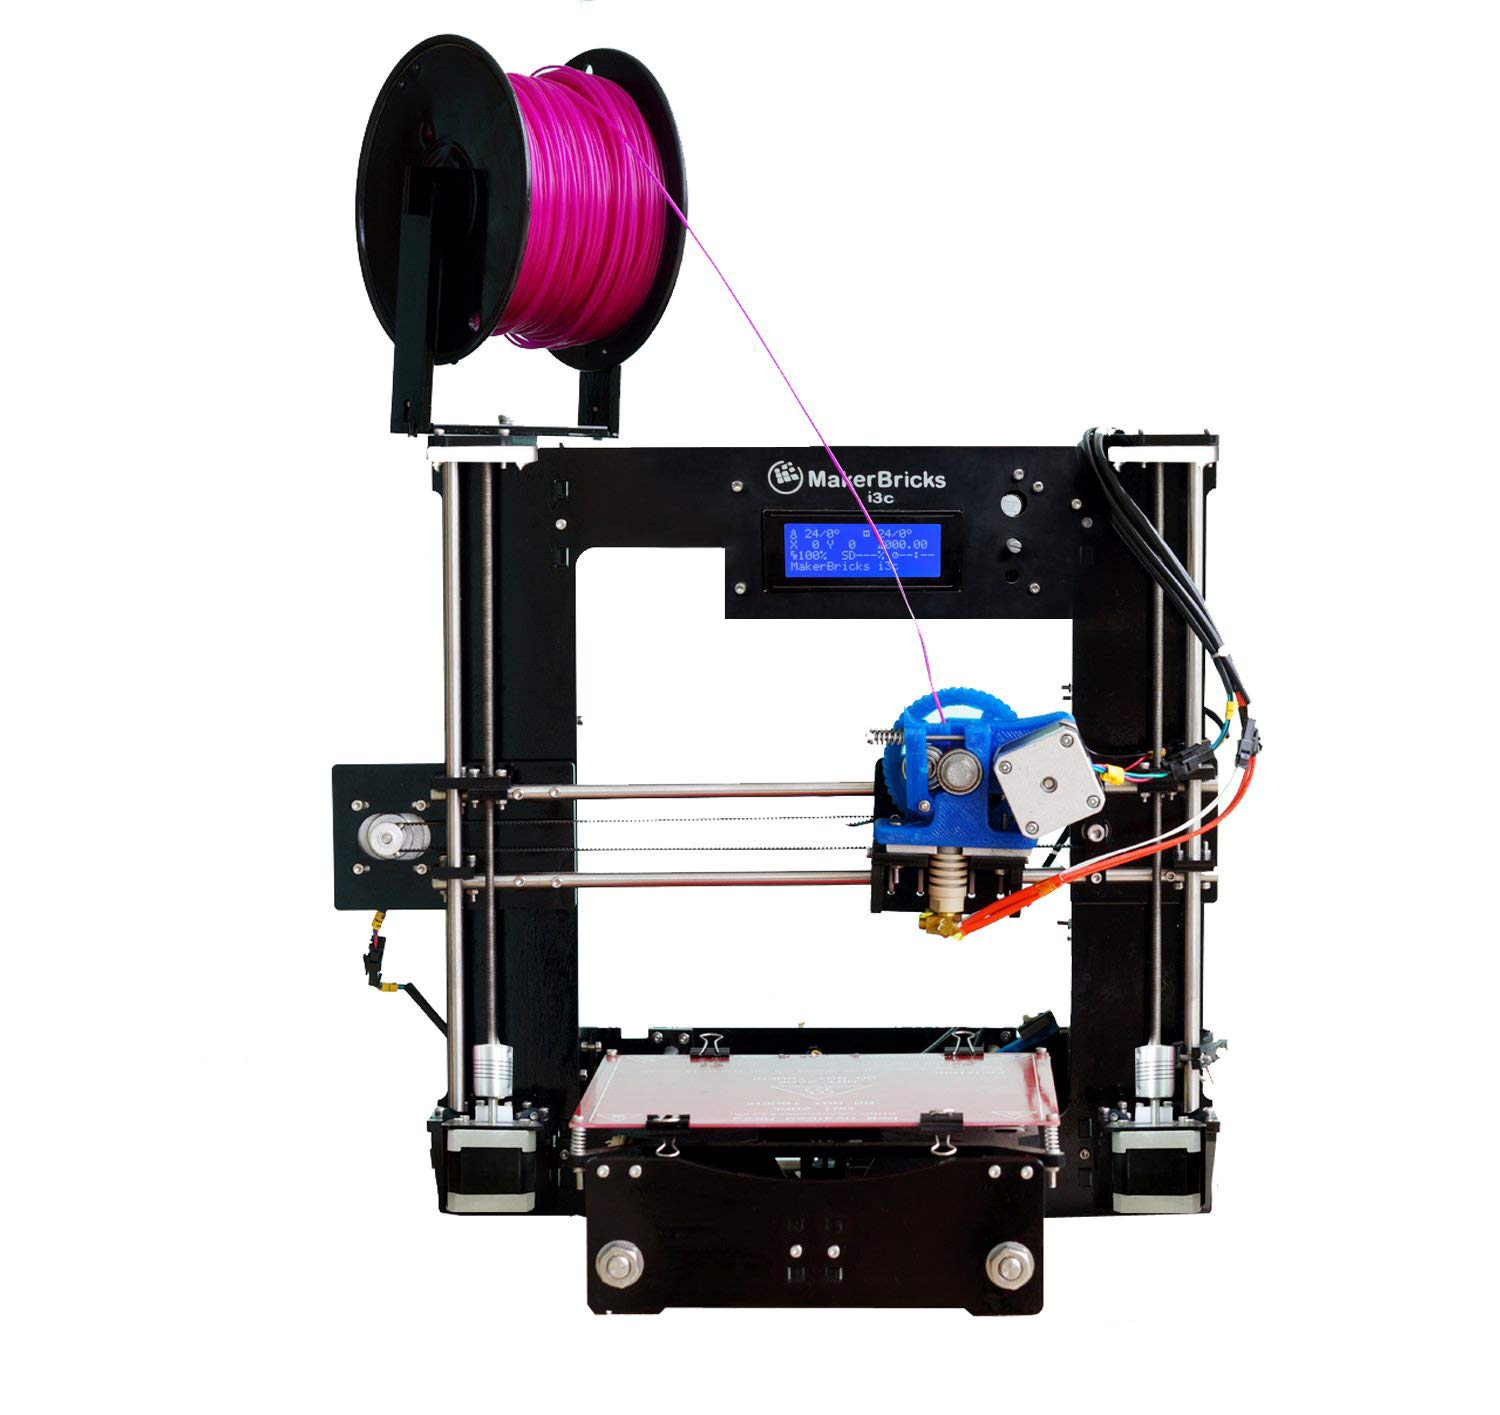 Best 3D printer for beginners in India